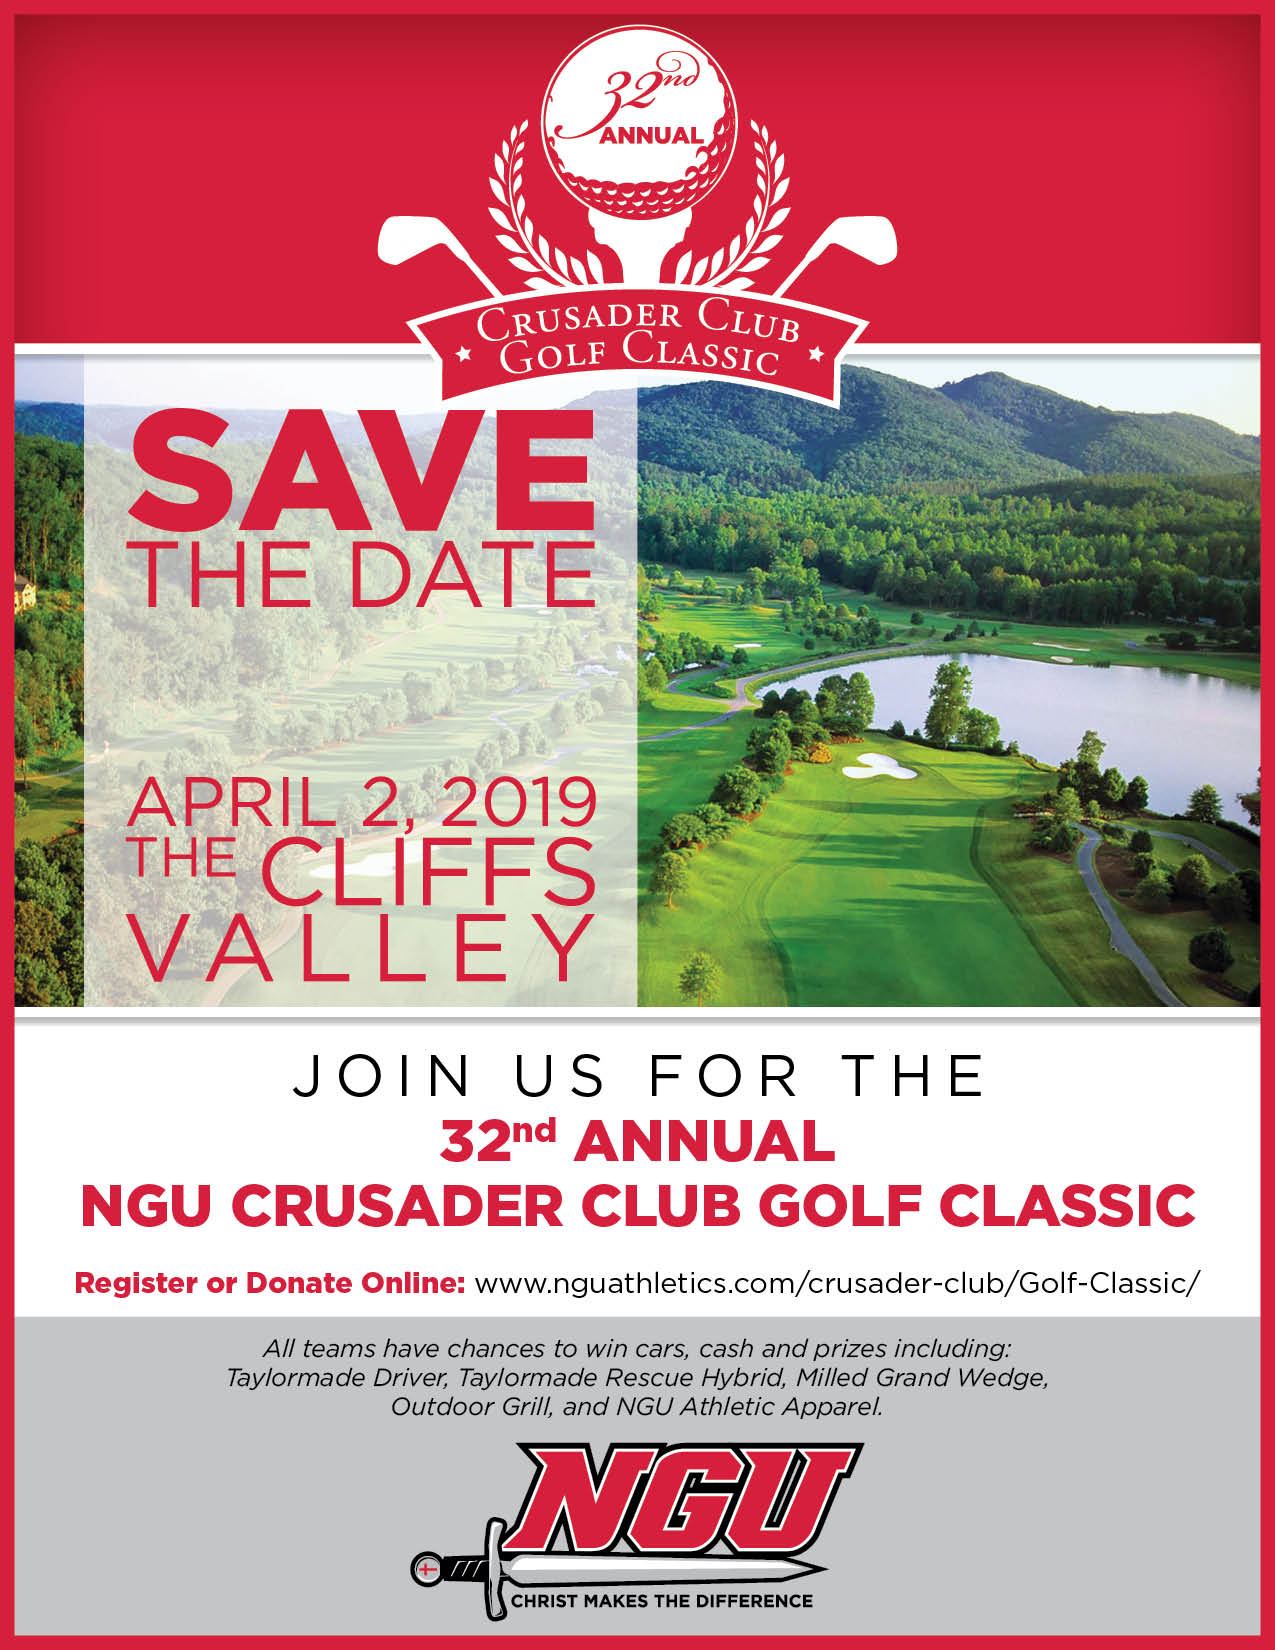 Ngu crusader club 32nd save the date eblast 2019  3